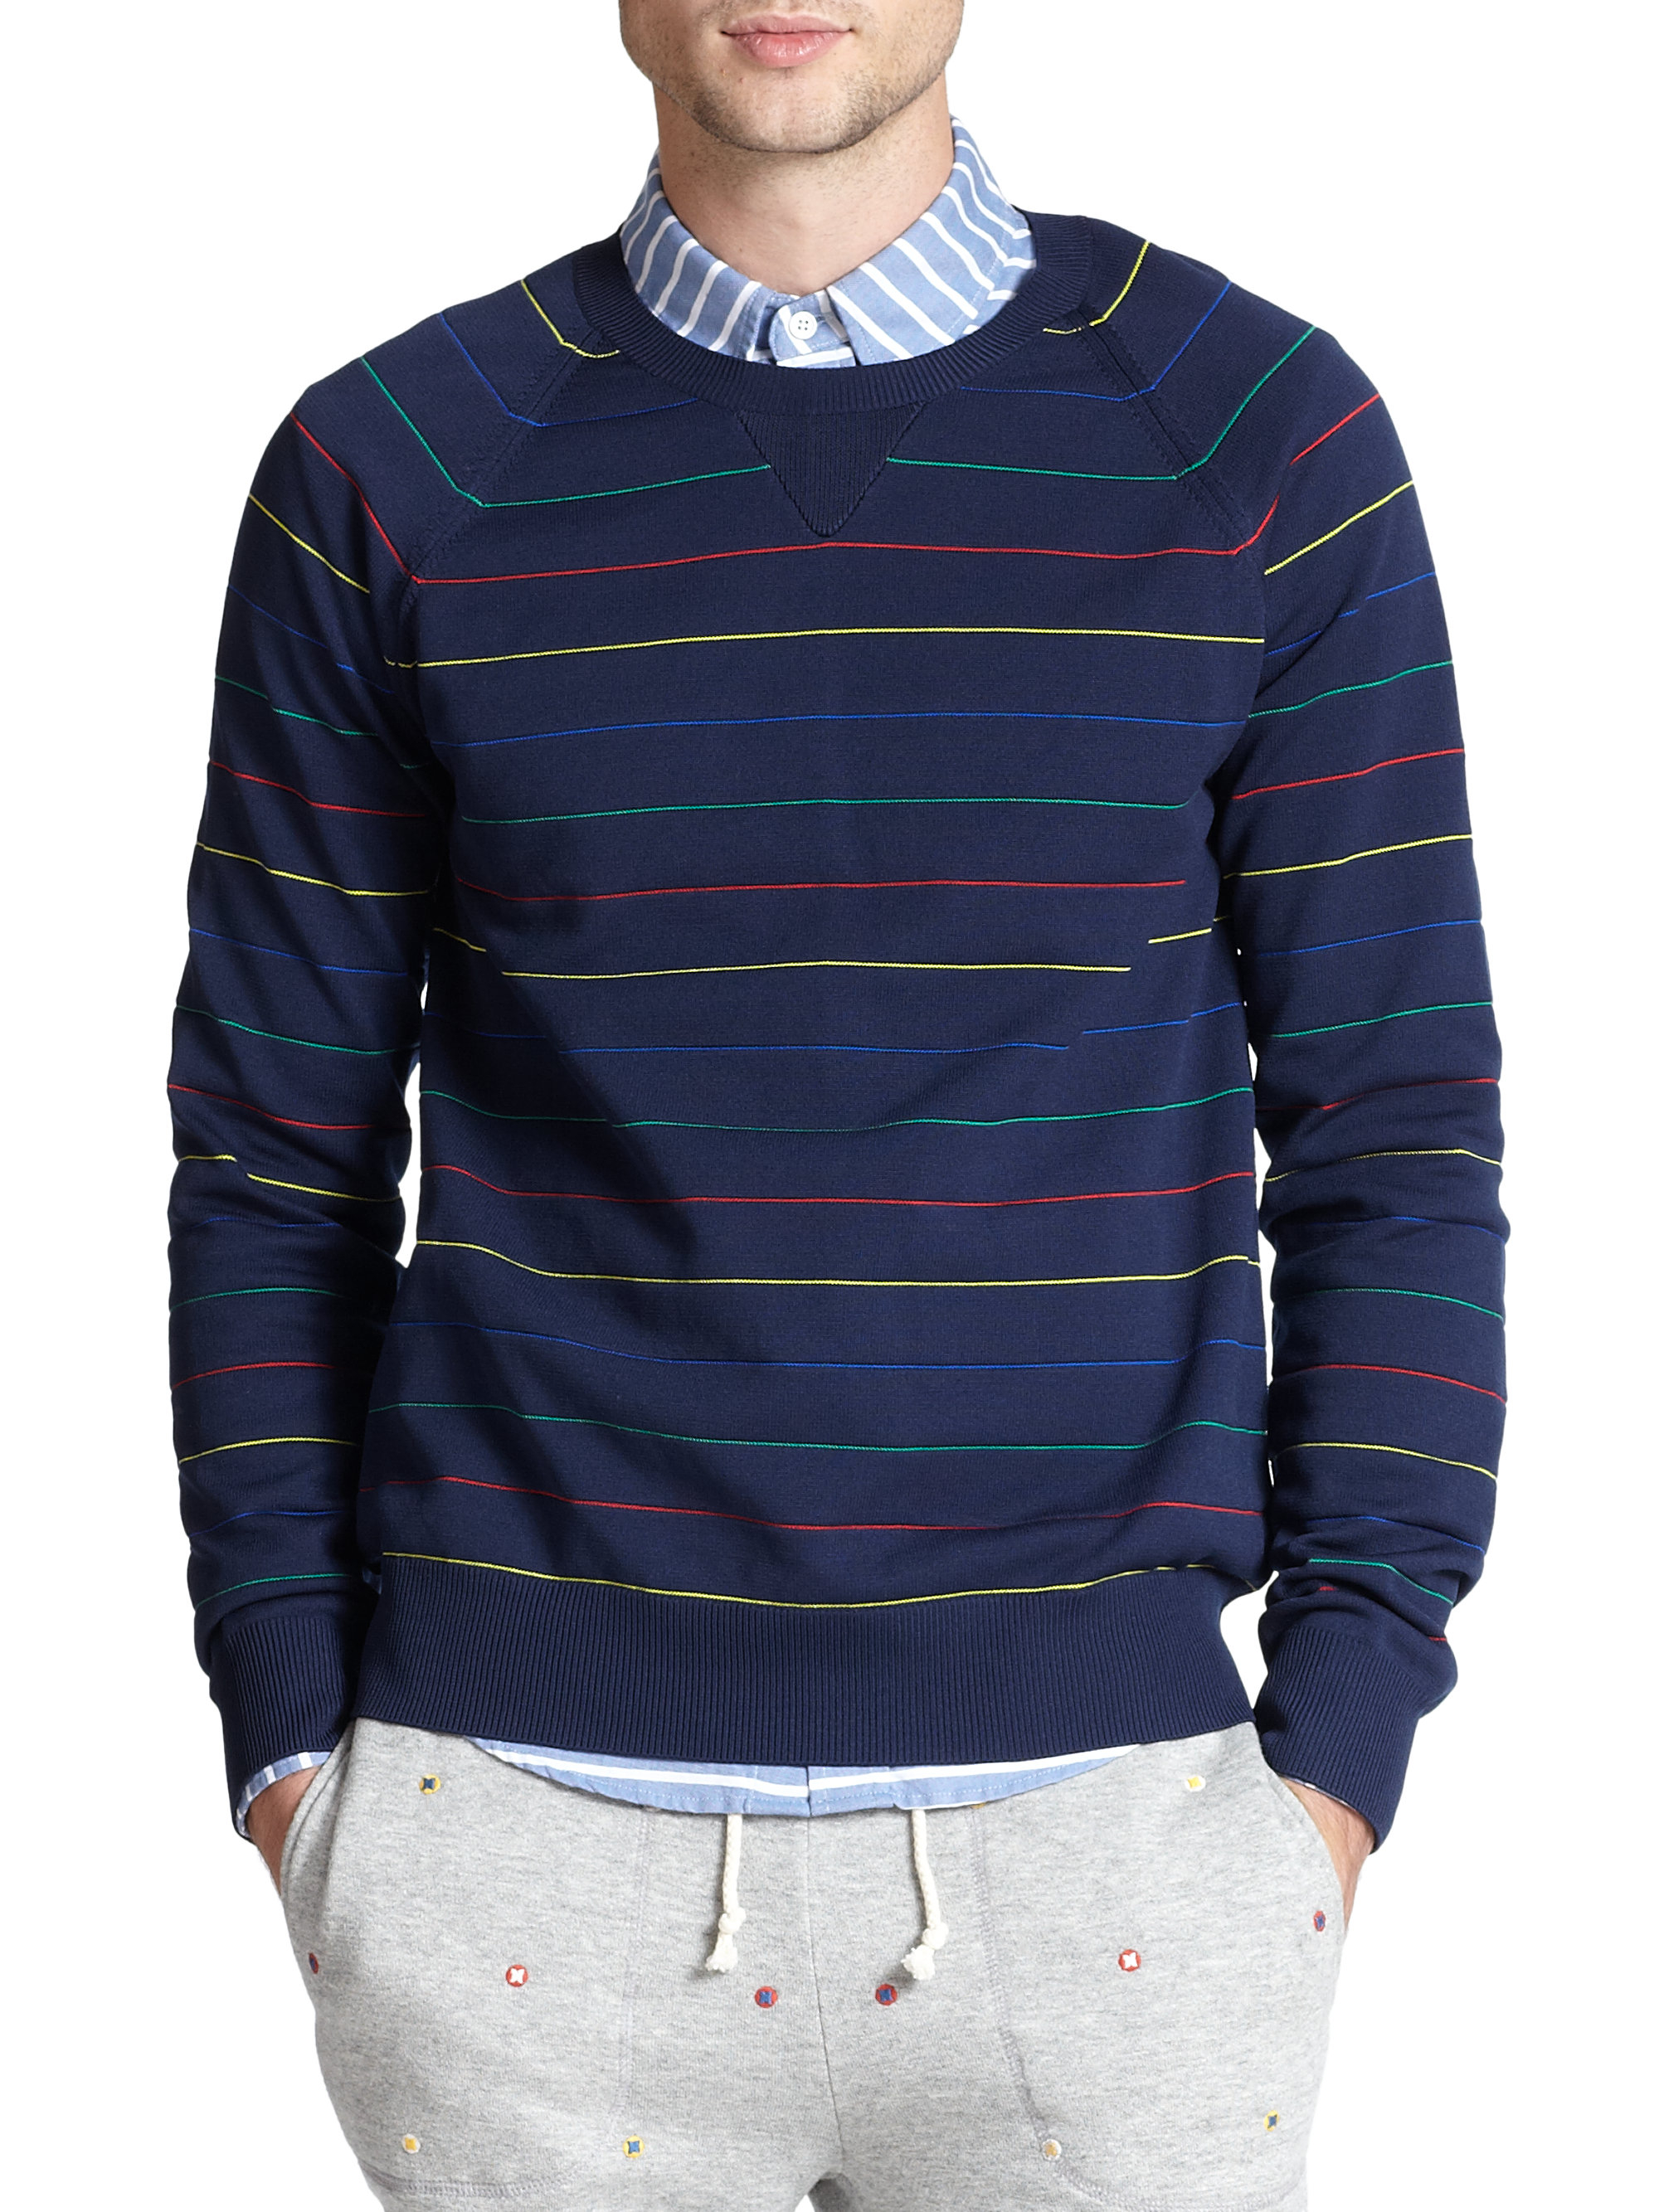 Band of outsiders Stripe Crewneck Sweater in Blue for Men | Lyst